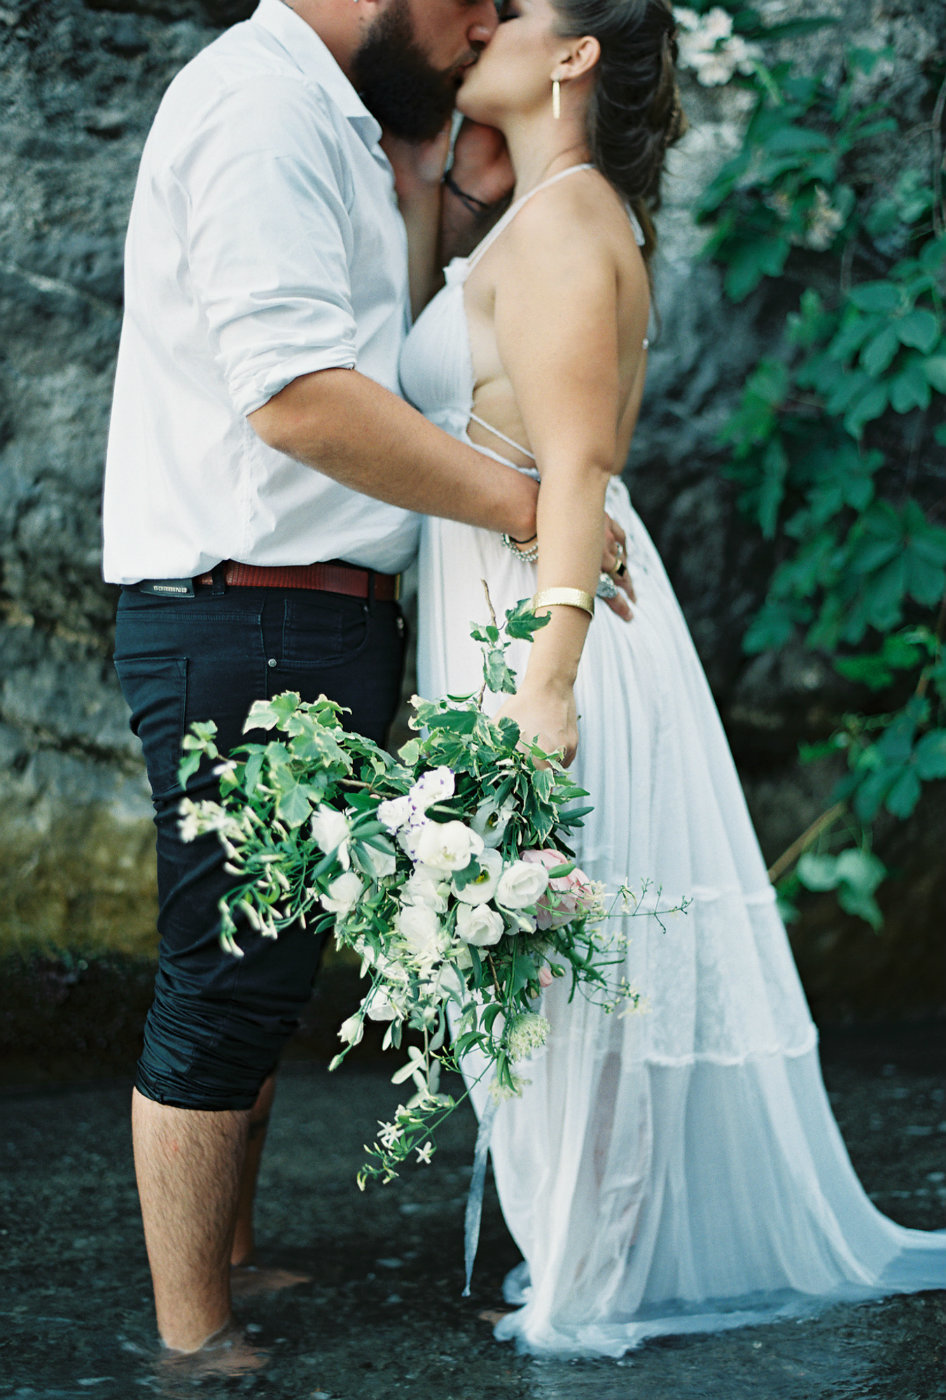 positano_italy_elopement_melanie_gabrielle_photography_114